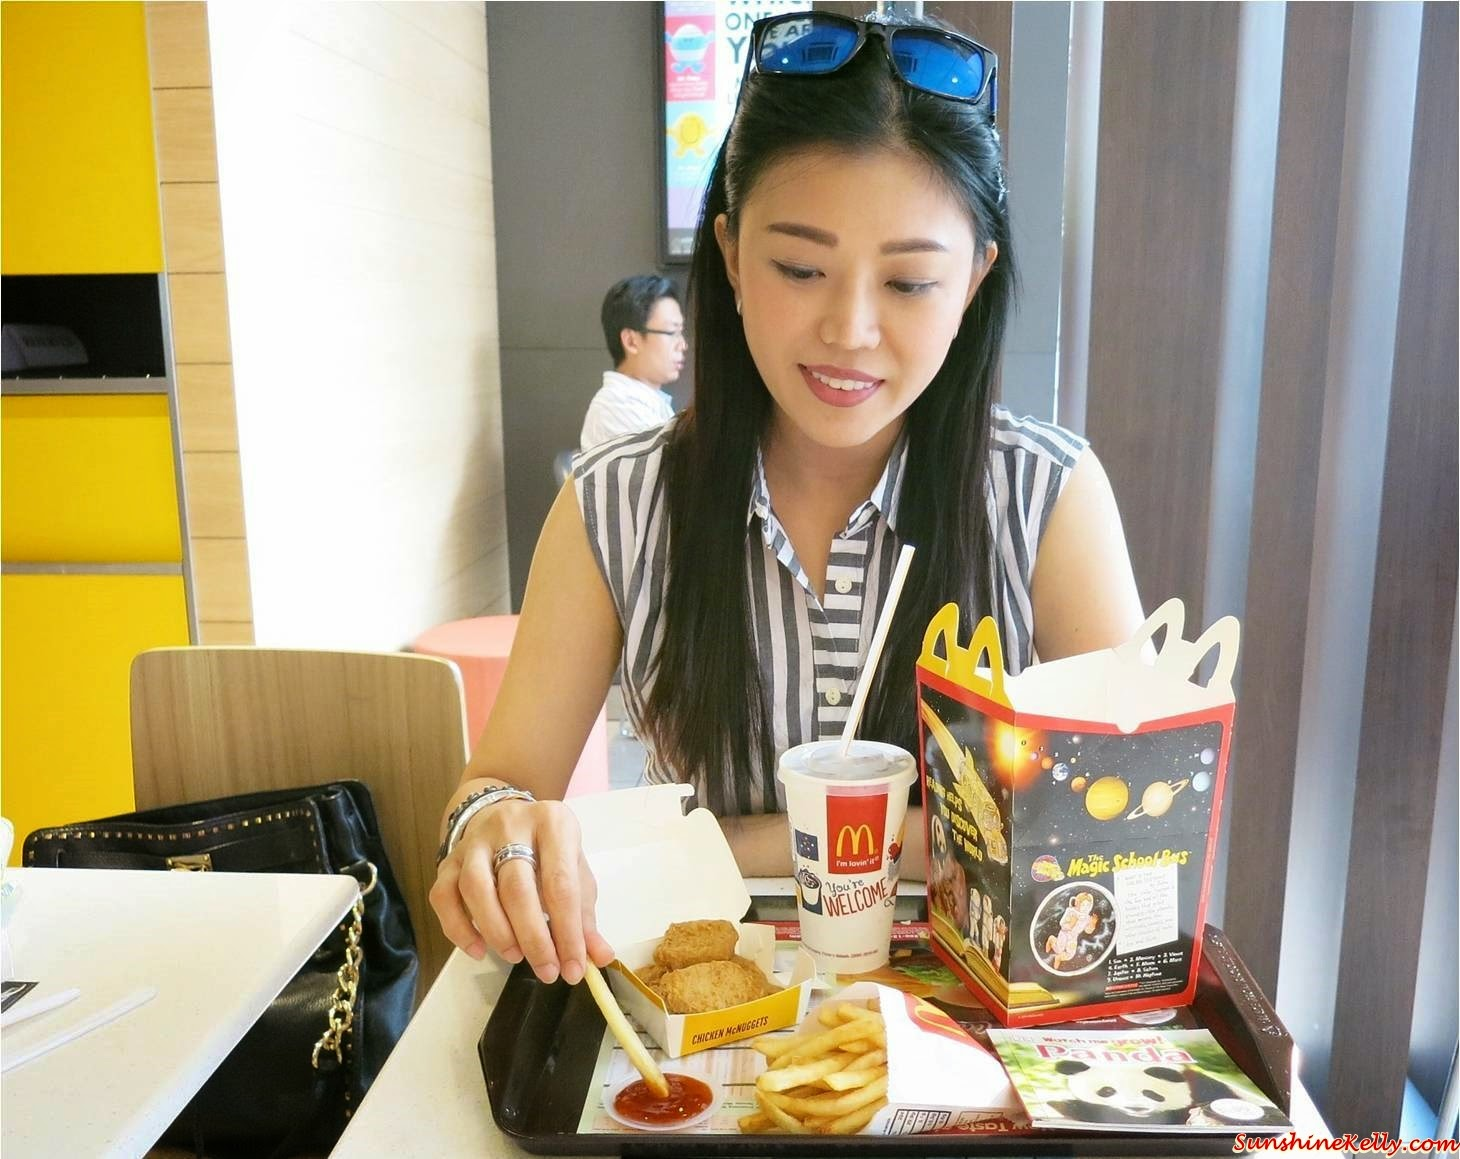 Happy Meal, McDonalds Happy Meal, Easy Saving Tips with Jimat Jimat McD, Easy Saving Tips, Money Saving Tips, Jimat Jimat McD, Happy Meal, Buy 1 Free 1